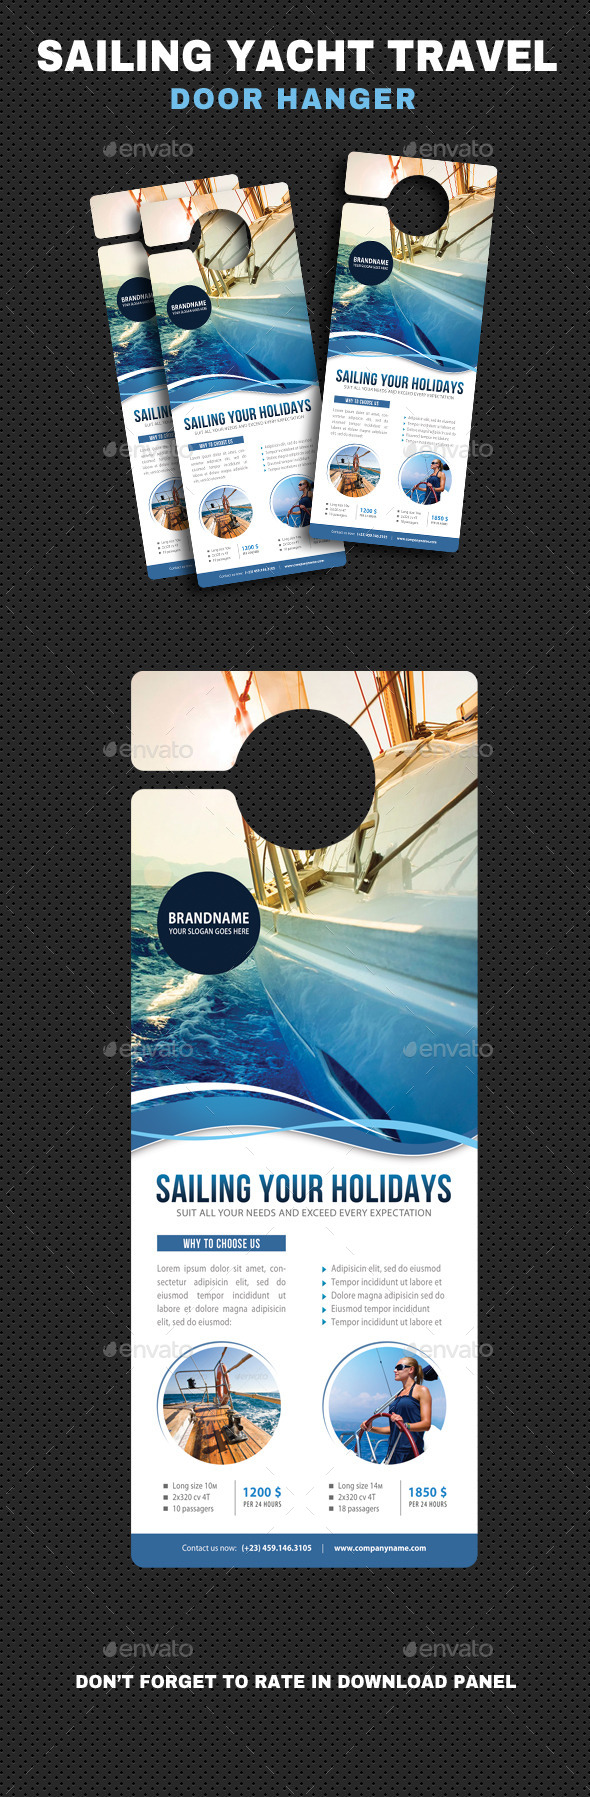 Sailing Yacht Travel Door Hanger V04 - Miscellaneous Print Templates